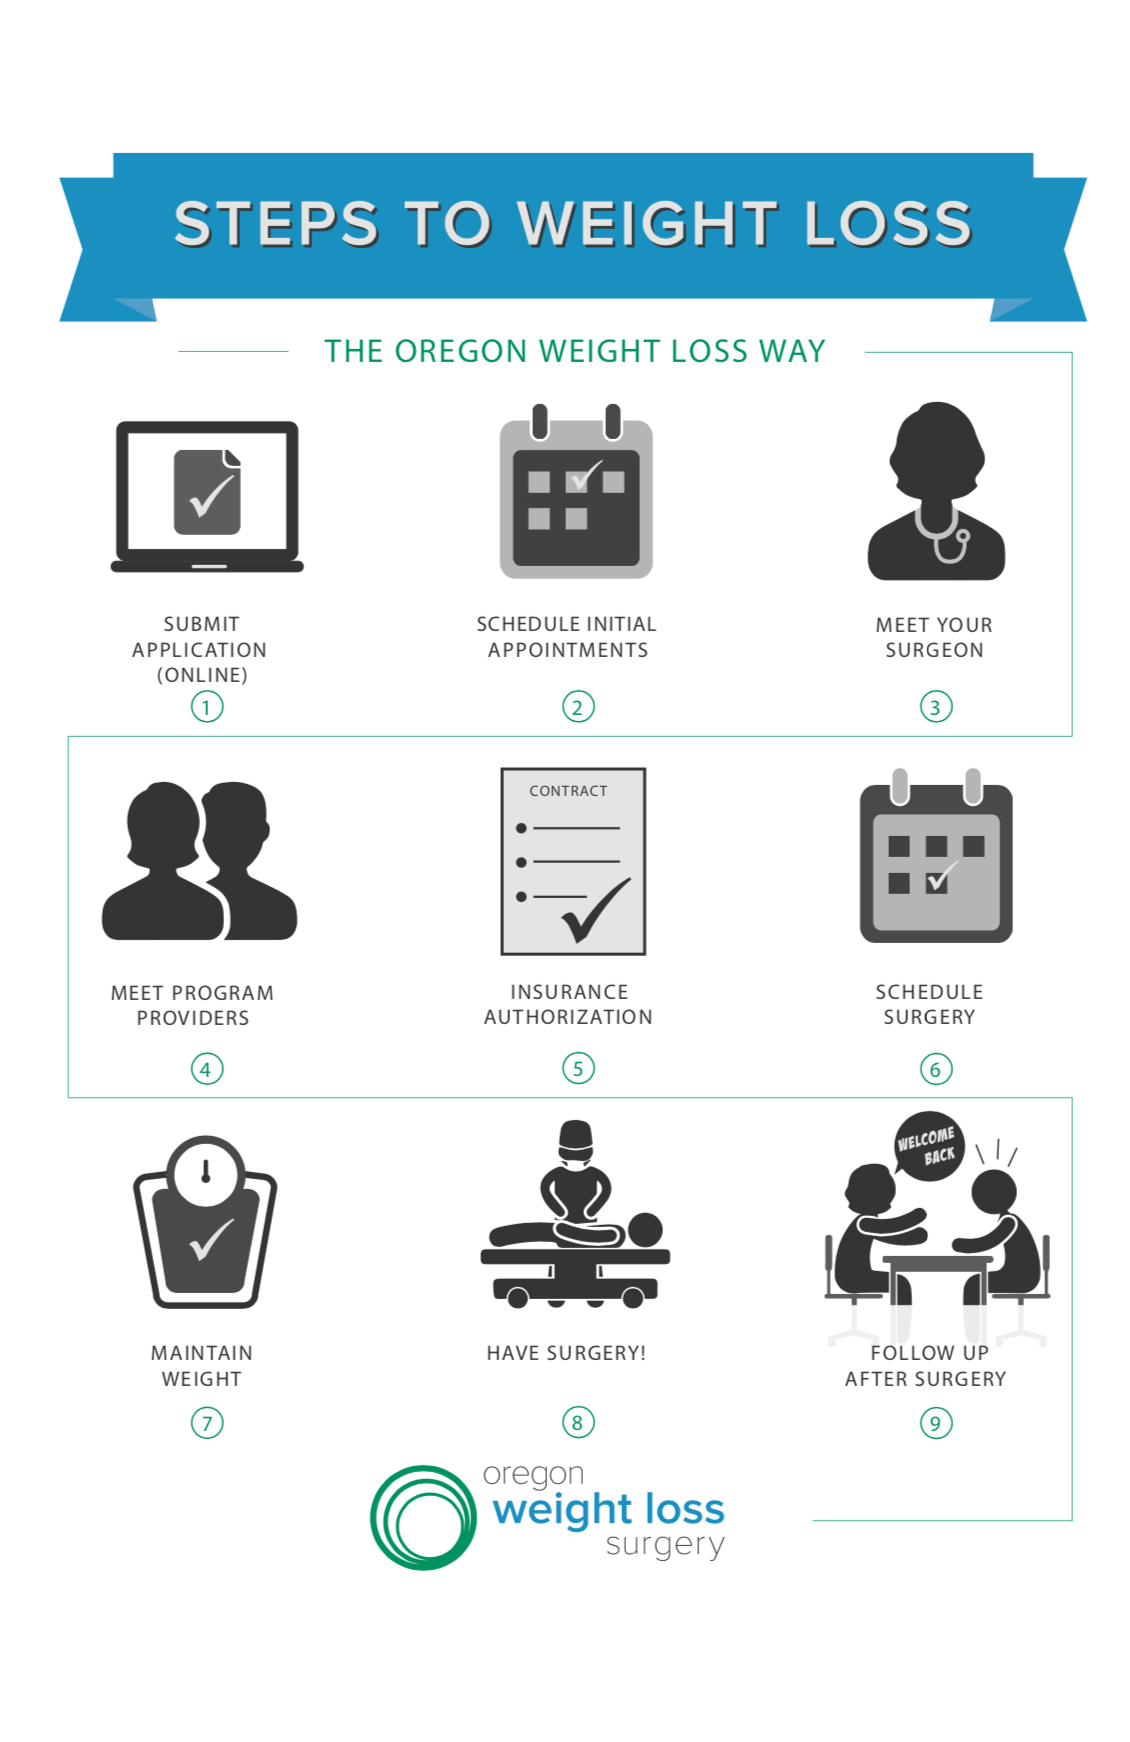 Steps to Weight Loss Infographic